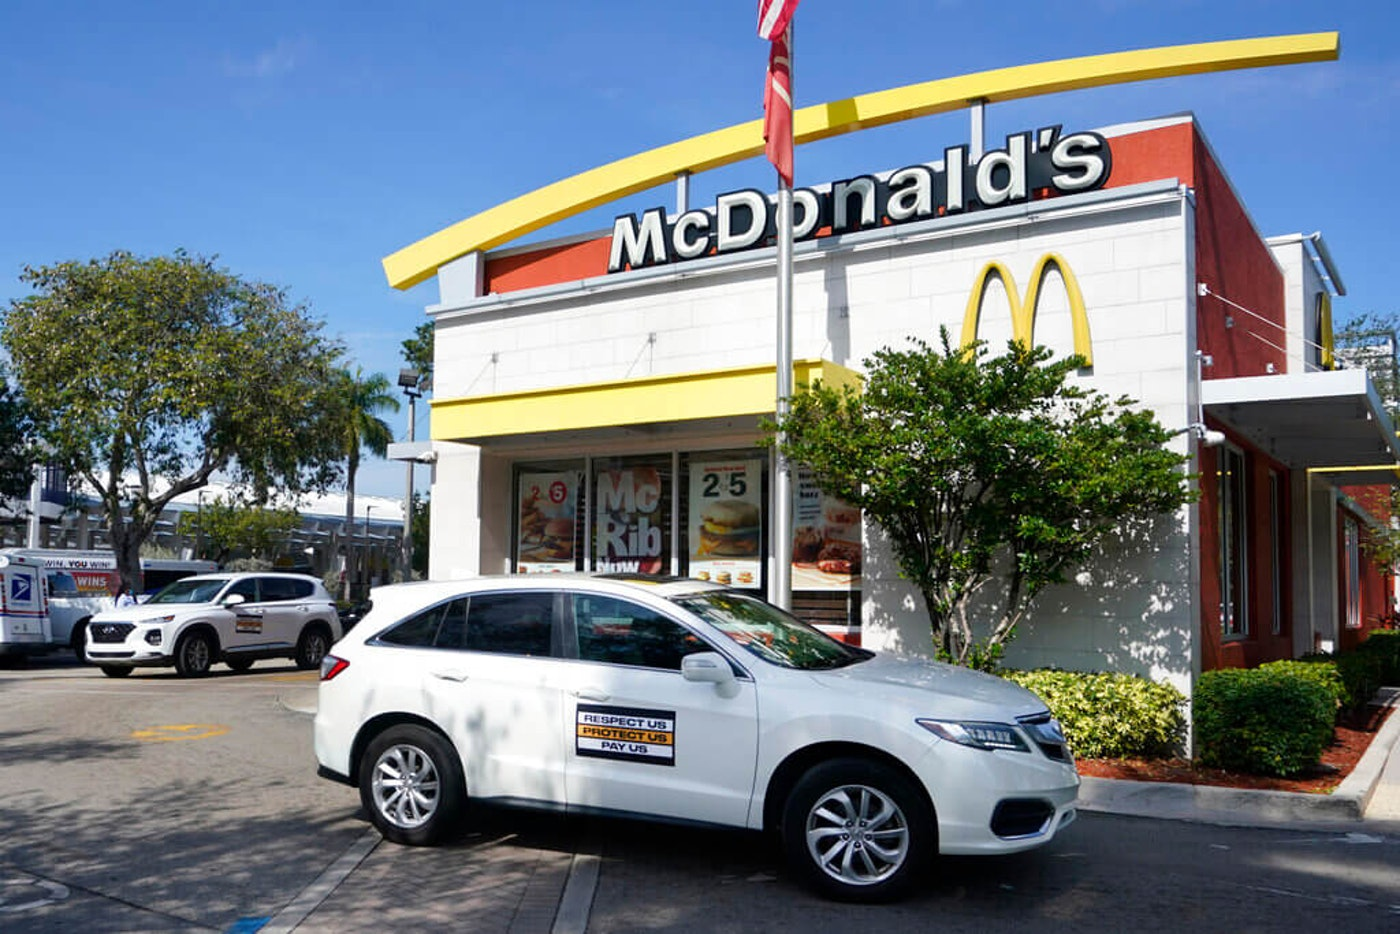 caravans of fast food workers circling McDonald's in demands for an increase in minimum wage